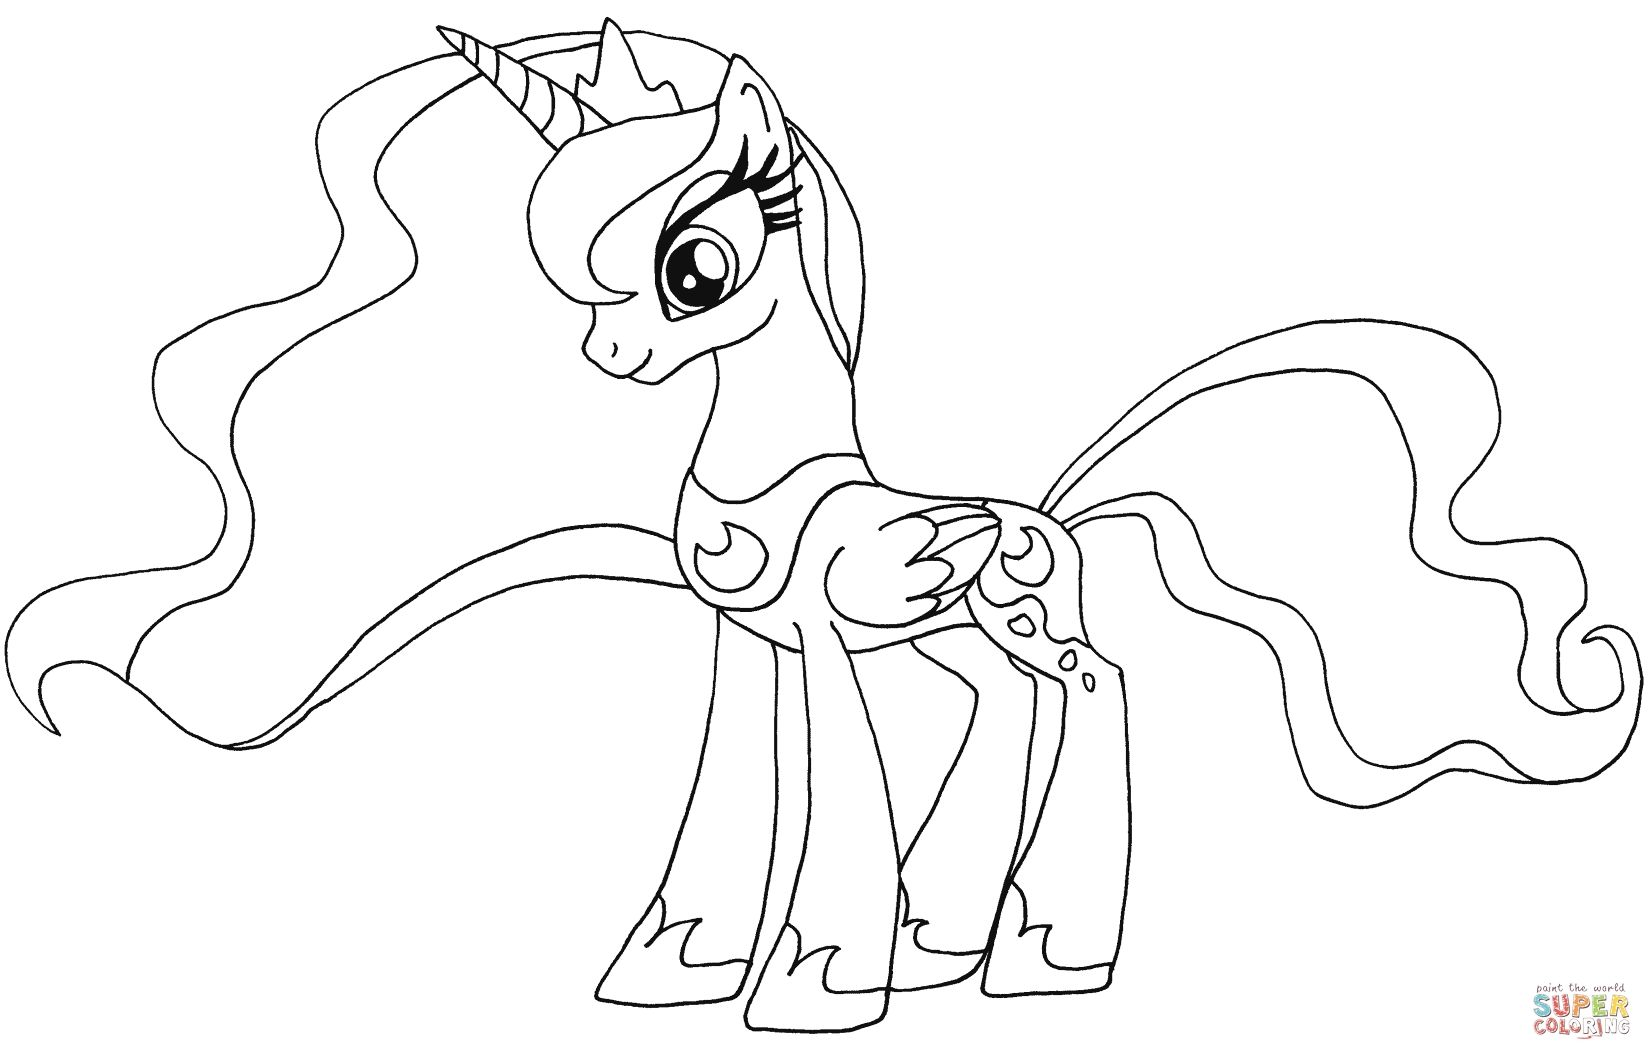 My Little Pony Coloring Luna My Little Pony Coloring Luna My Little Pony Coloring Pag My Little Pony Coloring My Little Pony Princess Princess Coloring Pages